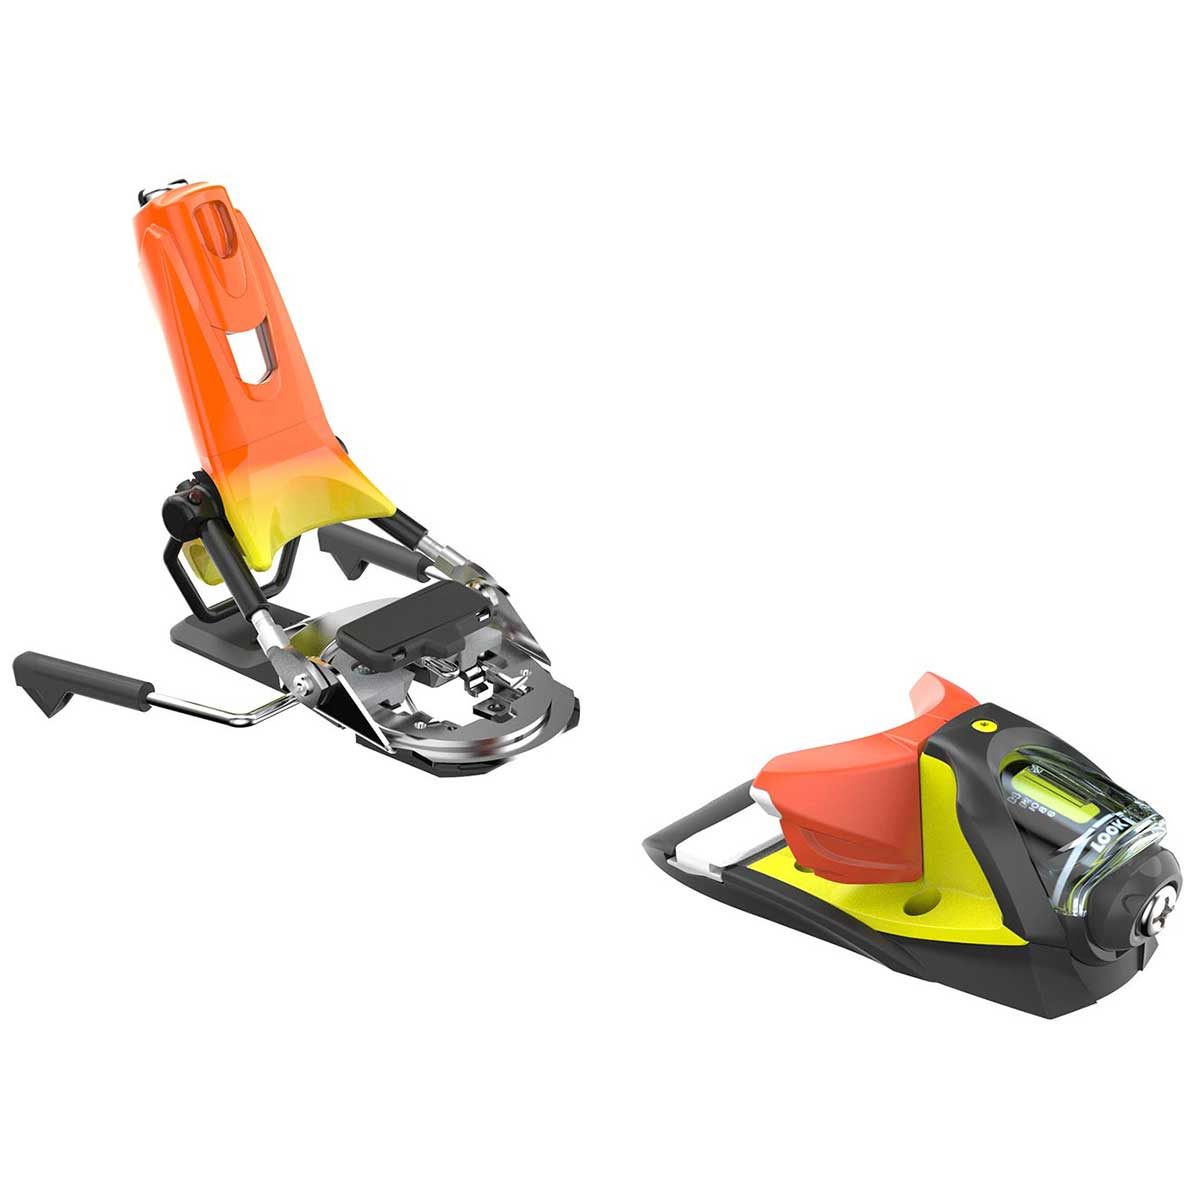 Look Pivot 14 AW ski binding in yellow and orange